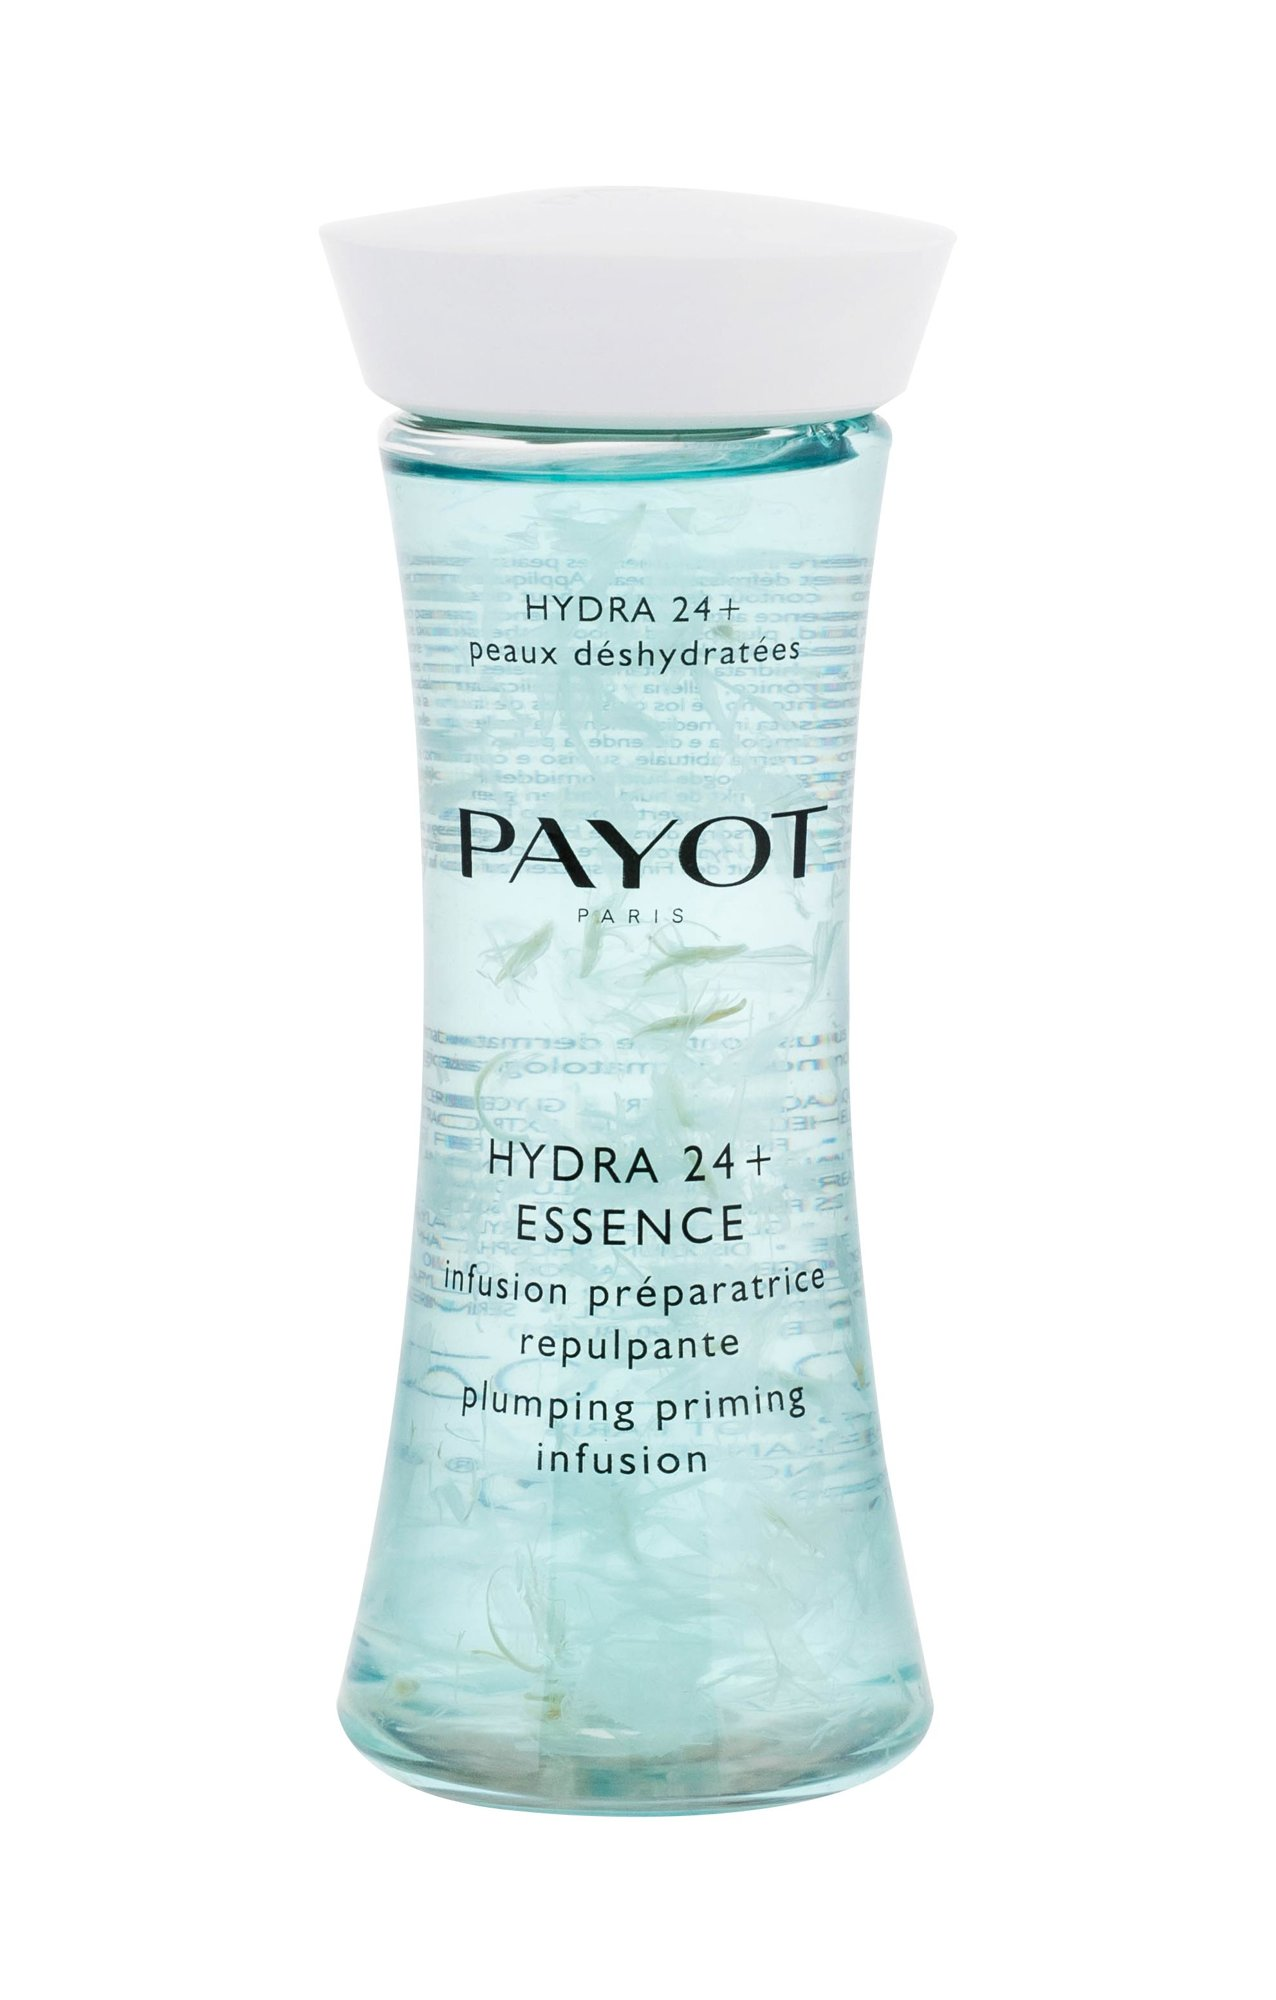 PAYOT Hydra 24+ Skin Serum 125ml  Essence